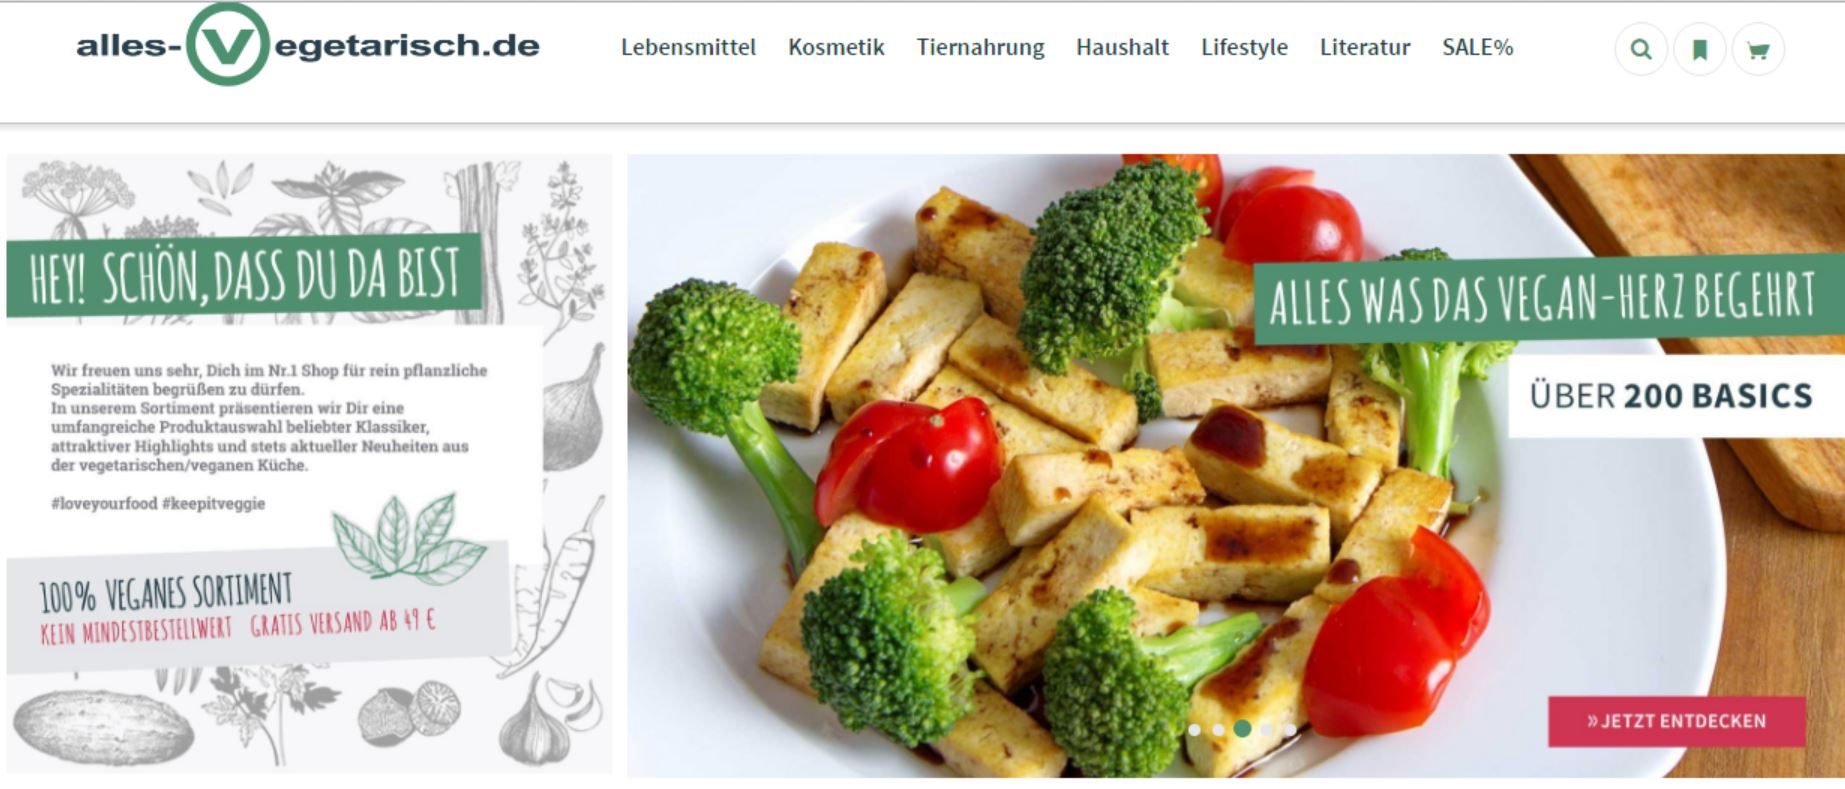 Website Alles-vegetarisch.de